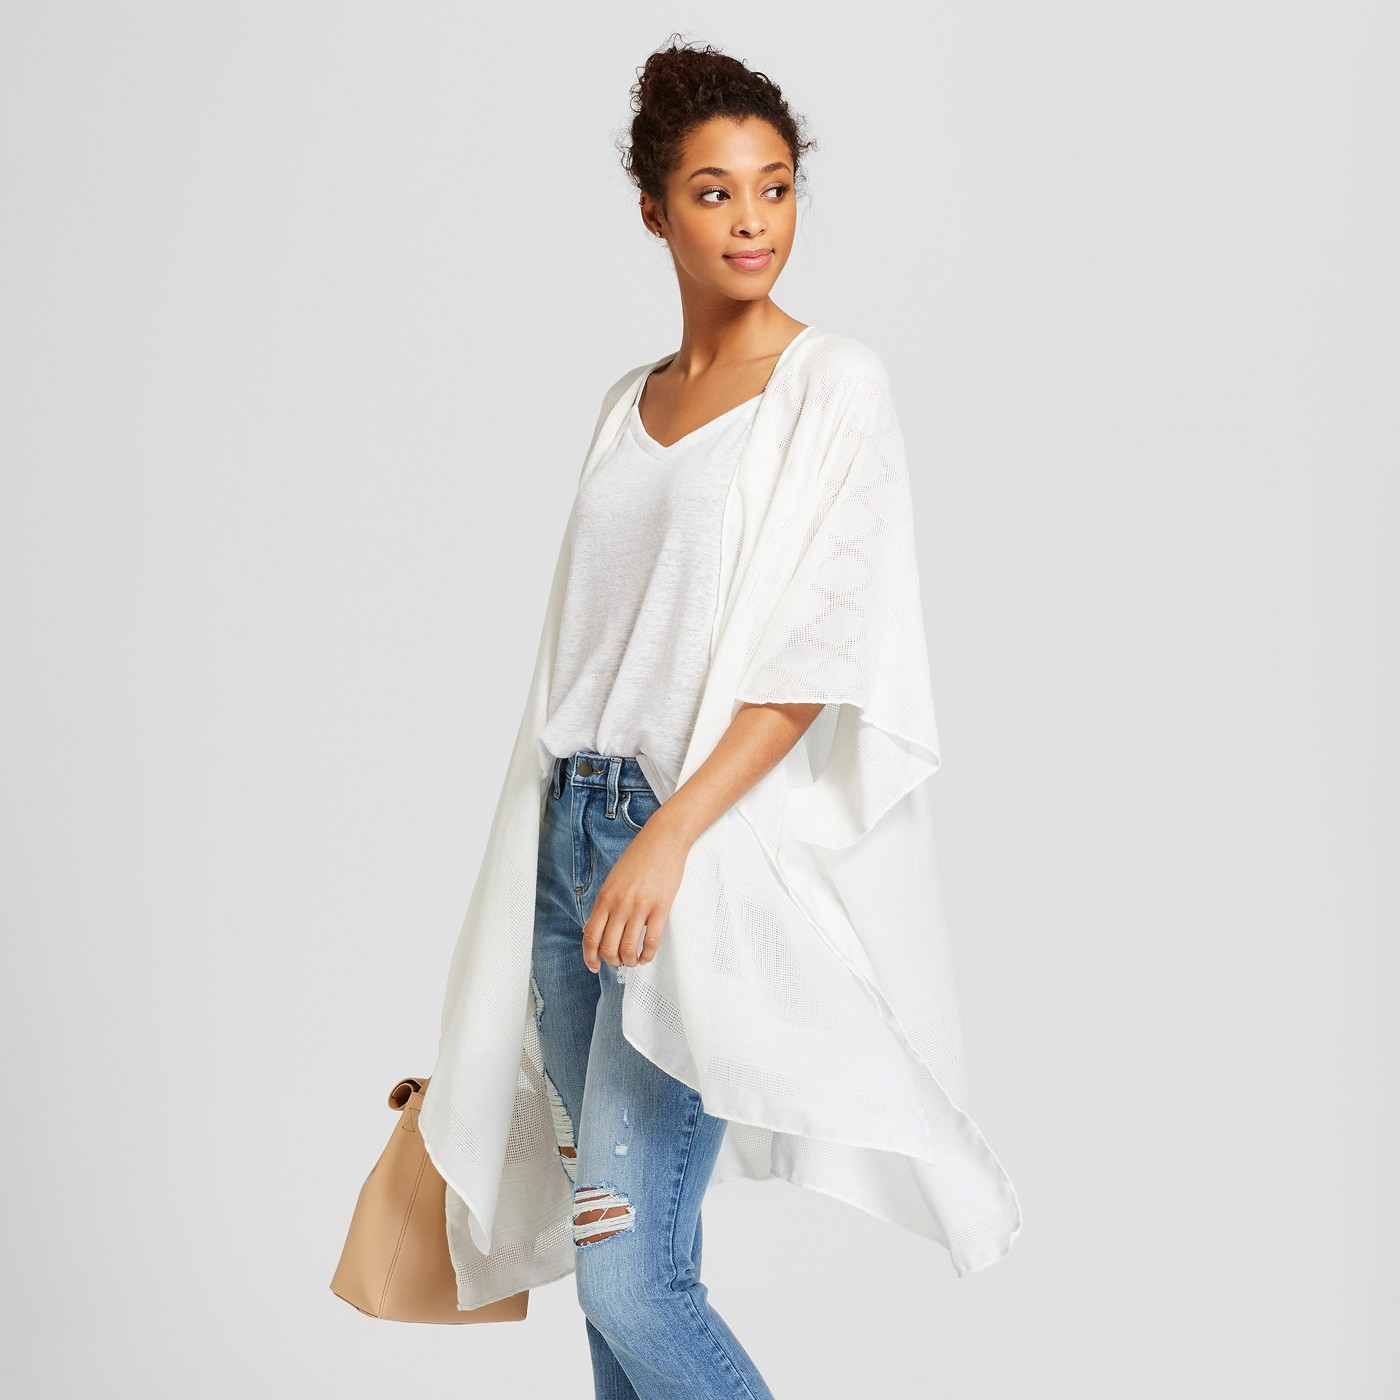 - This staple Kimono is a great layering piece and can also break up a dress with a busy pattern